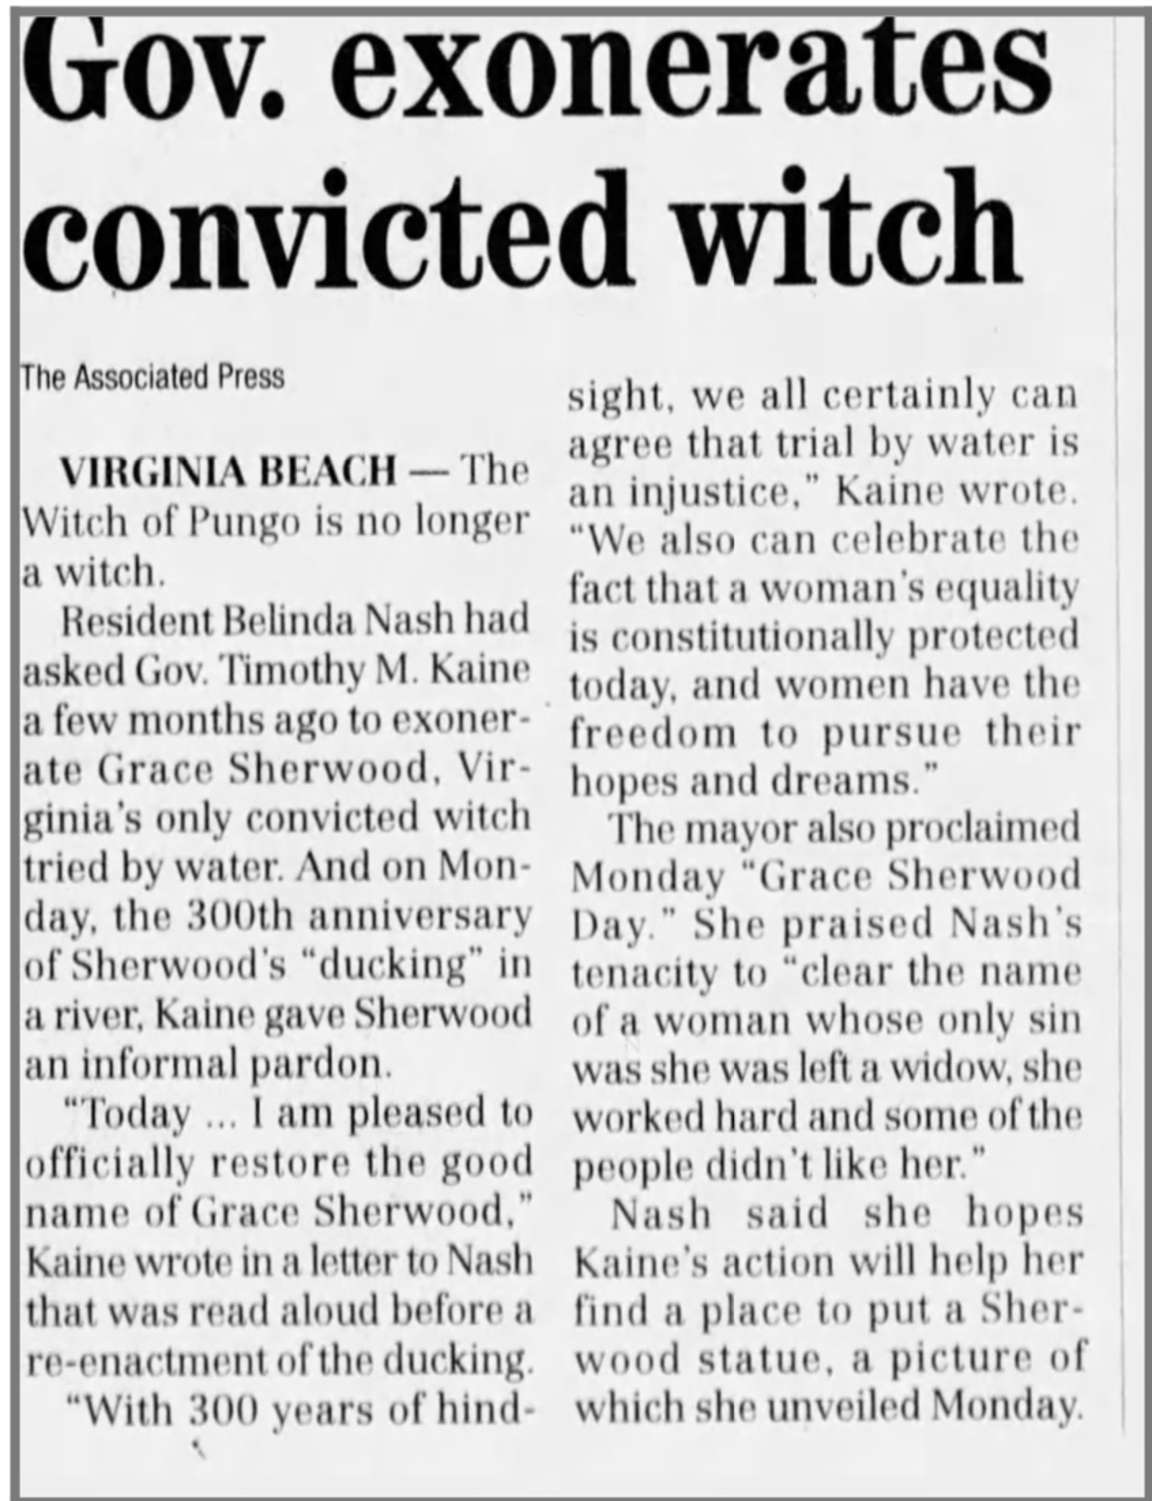 It only took 300 years, but eventually Grace Sherwood's name was cleared of charges of witchcraft.